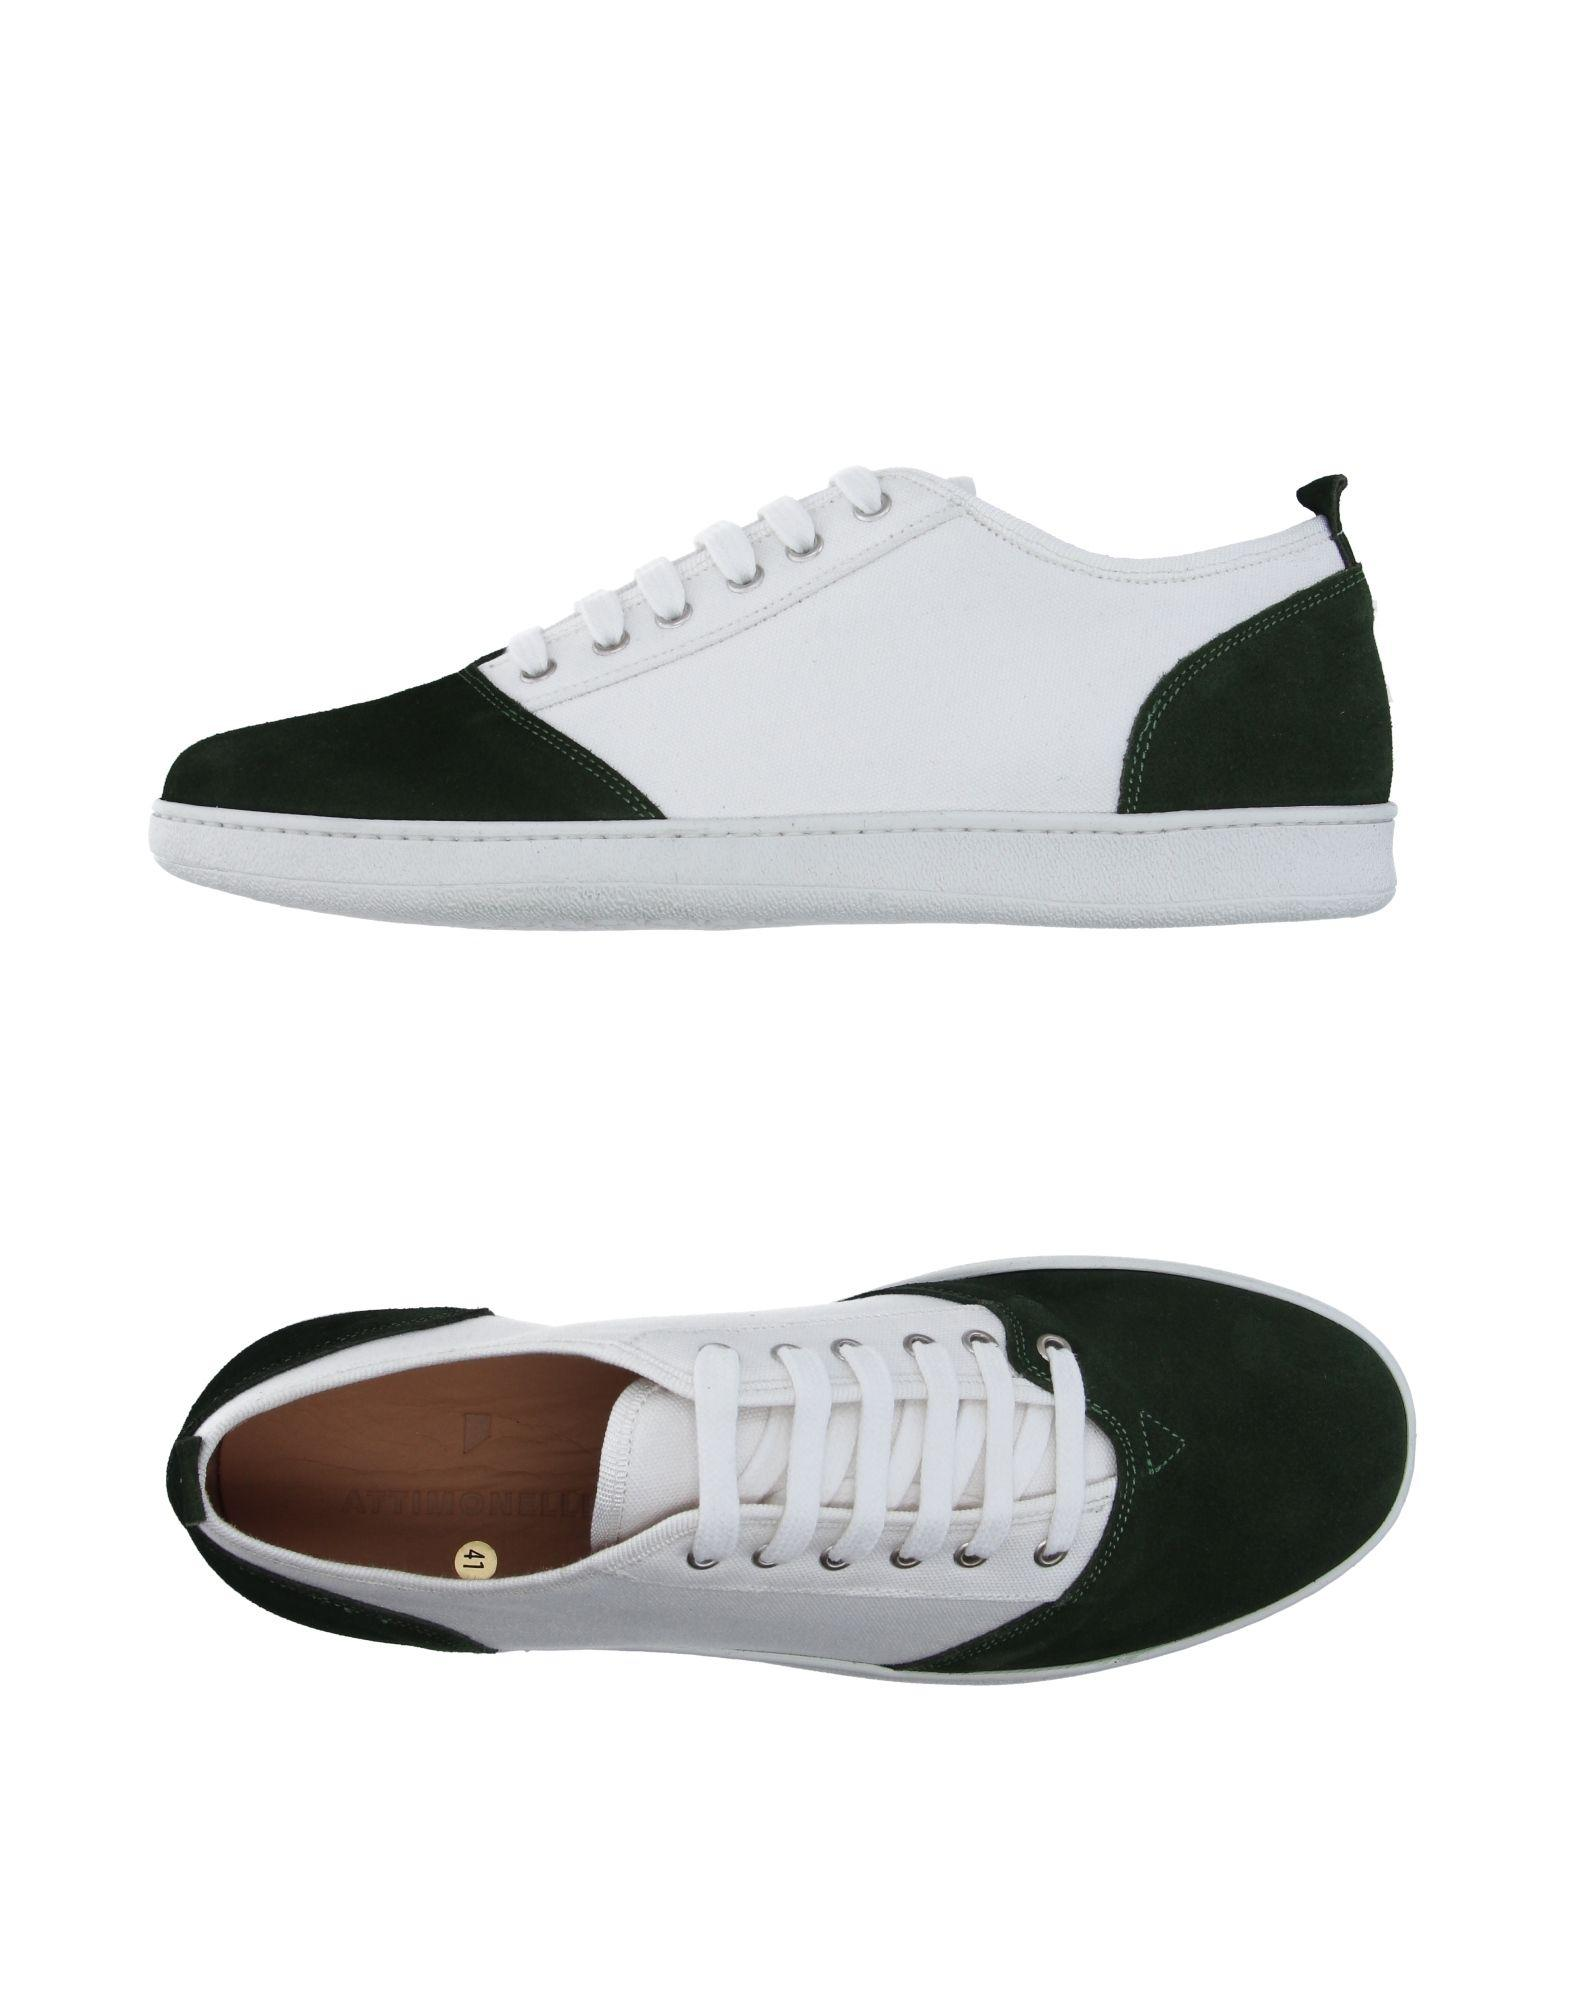 FOOTWEAR - Low-tops & sneakers ATTIMONELLIS For Nice For Sale Outlet Excellent Lu93Yl